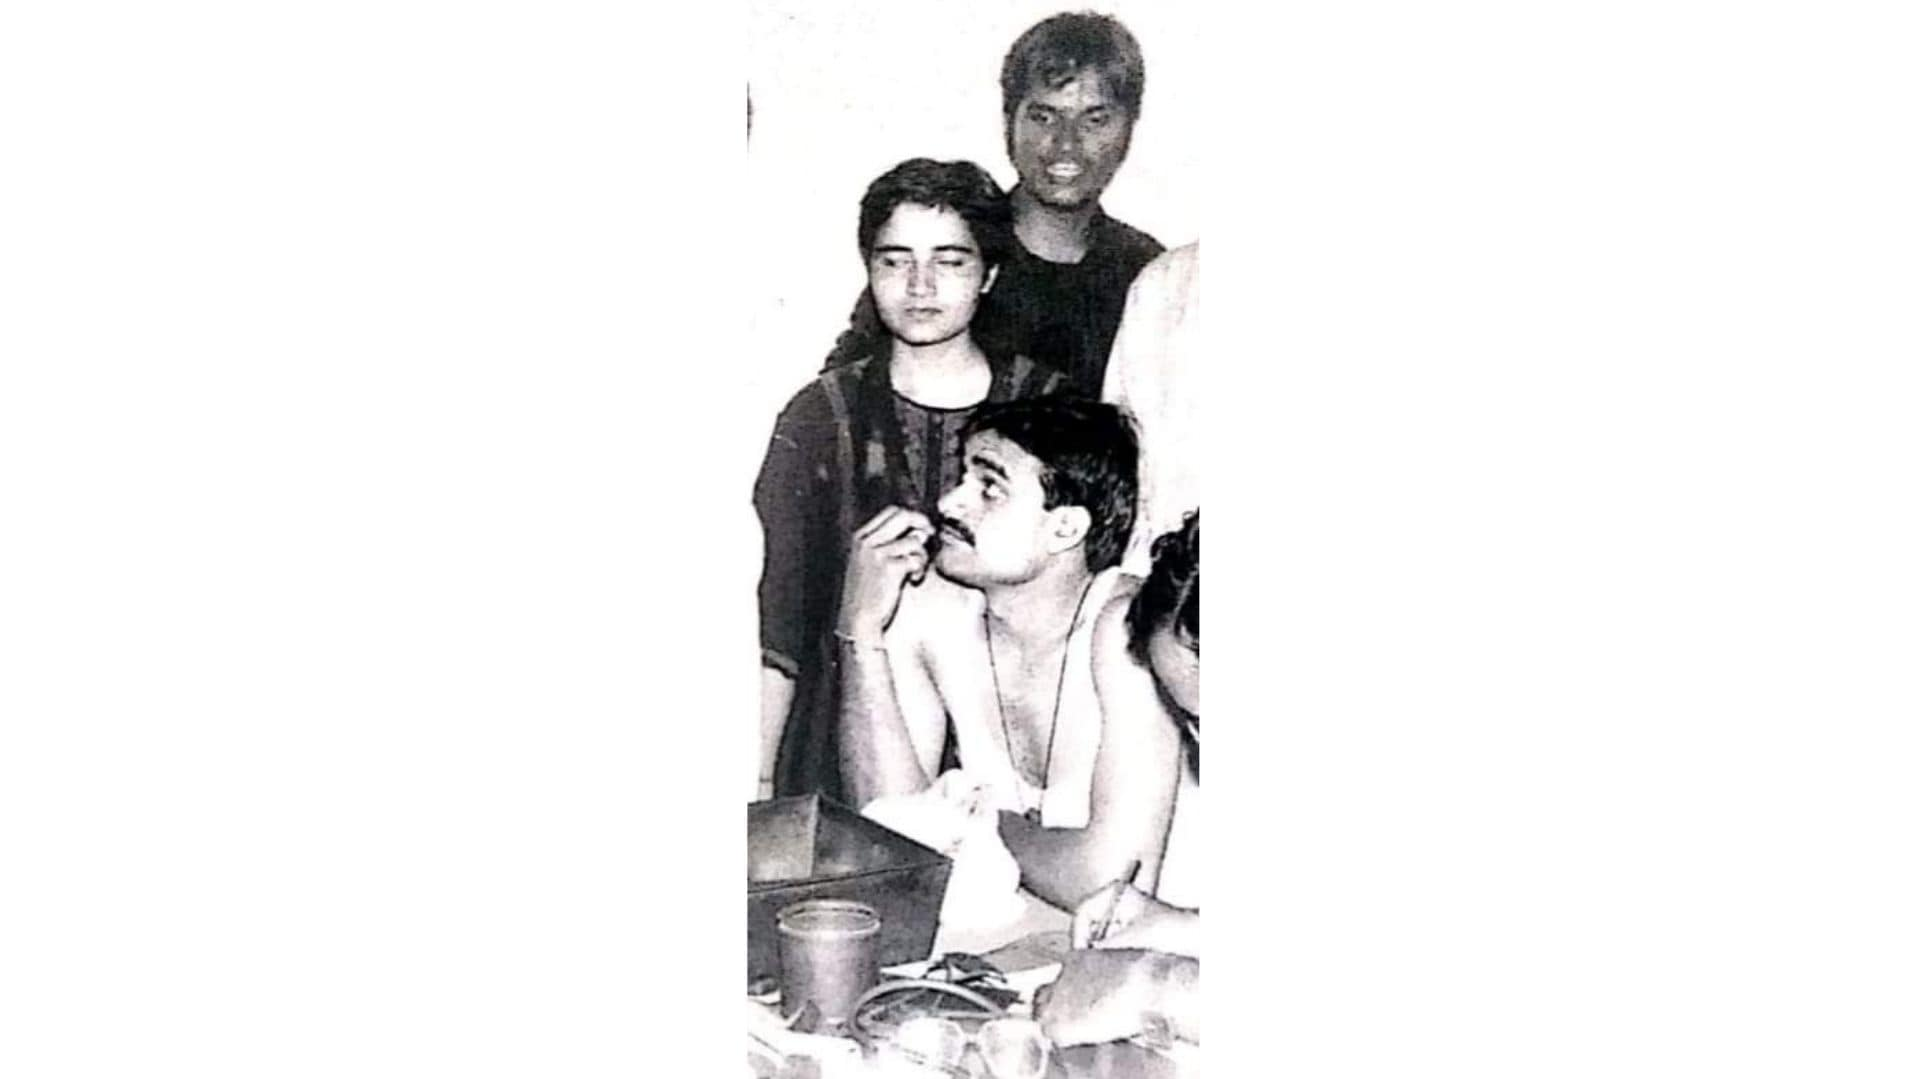 Pragya 8 - Pragya in an ABVP meeting in 1998. Seated below is V.D. Sharma, the MP from Khajuraho (Procured)